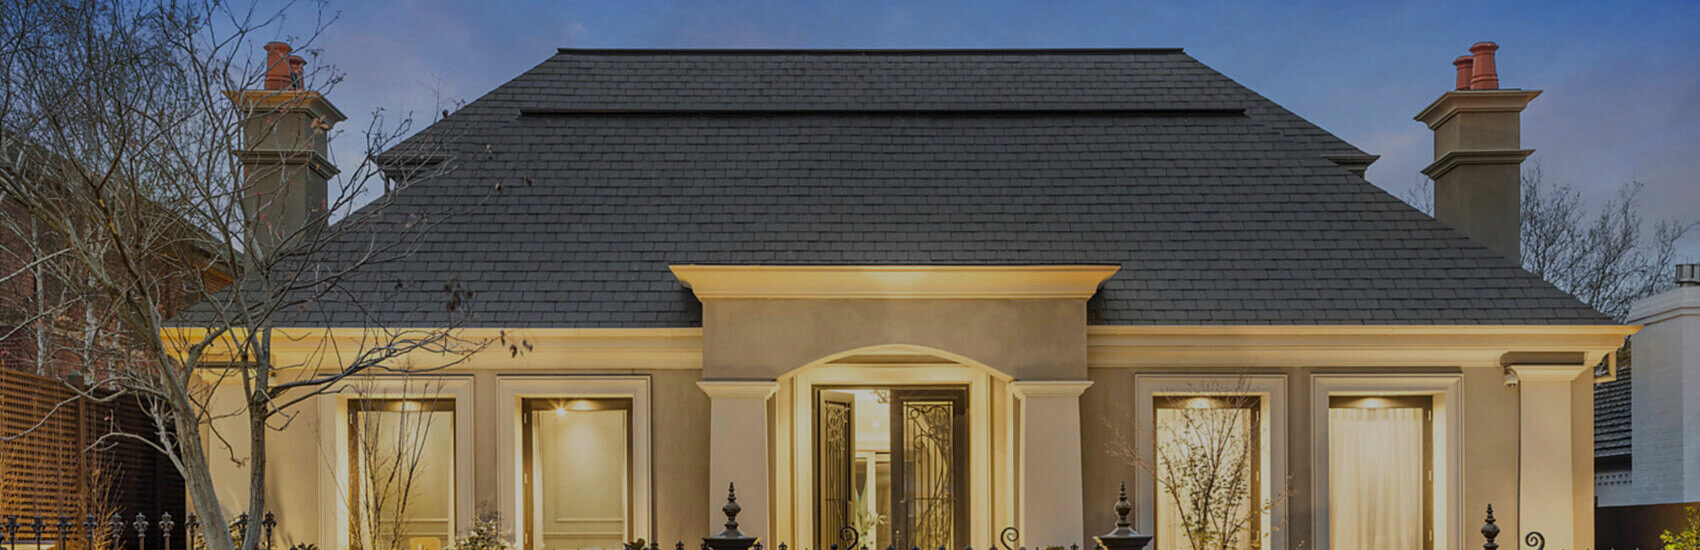 The One to decorate your home with classic and elegant roofing